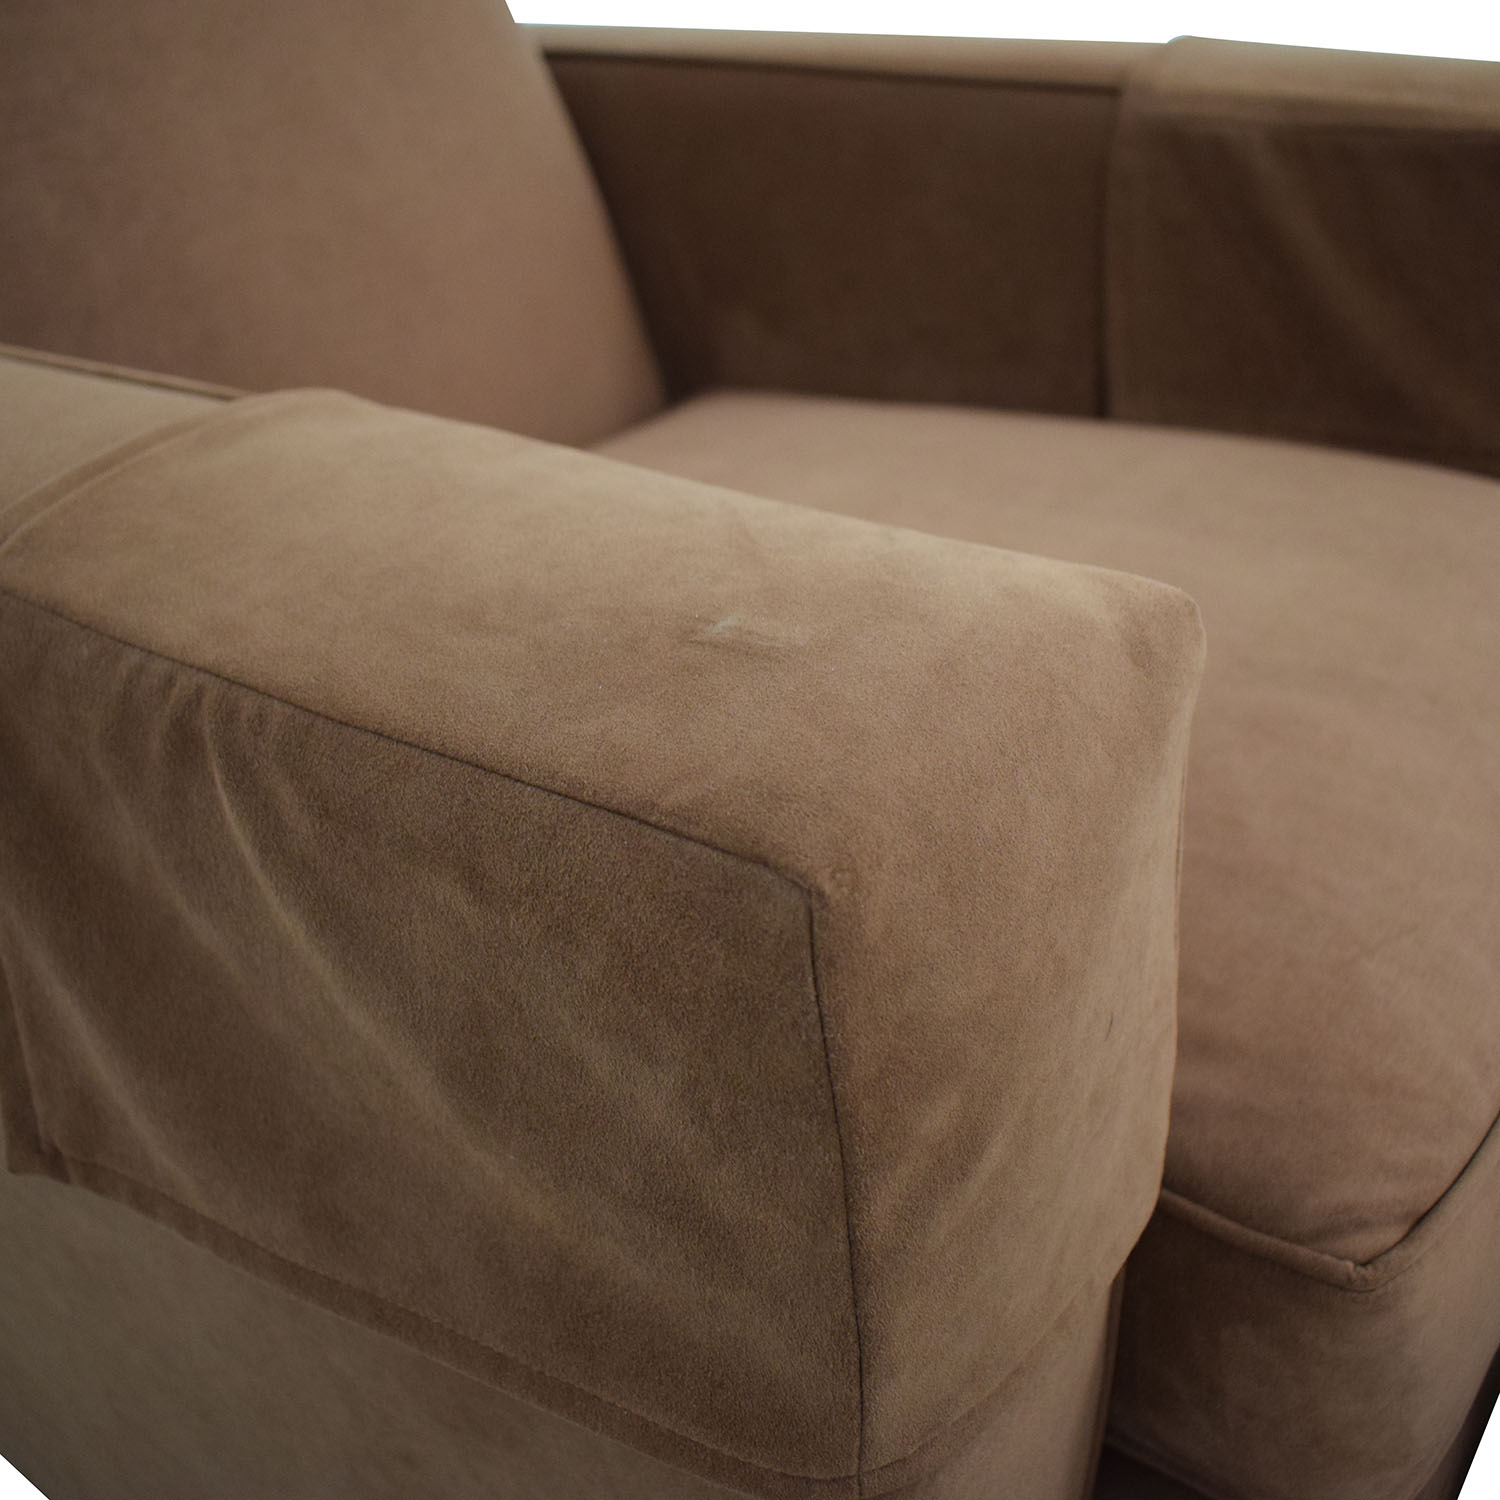 Hickory Chair Hickory Chair Ultra Suede Chair and Ottoman